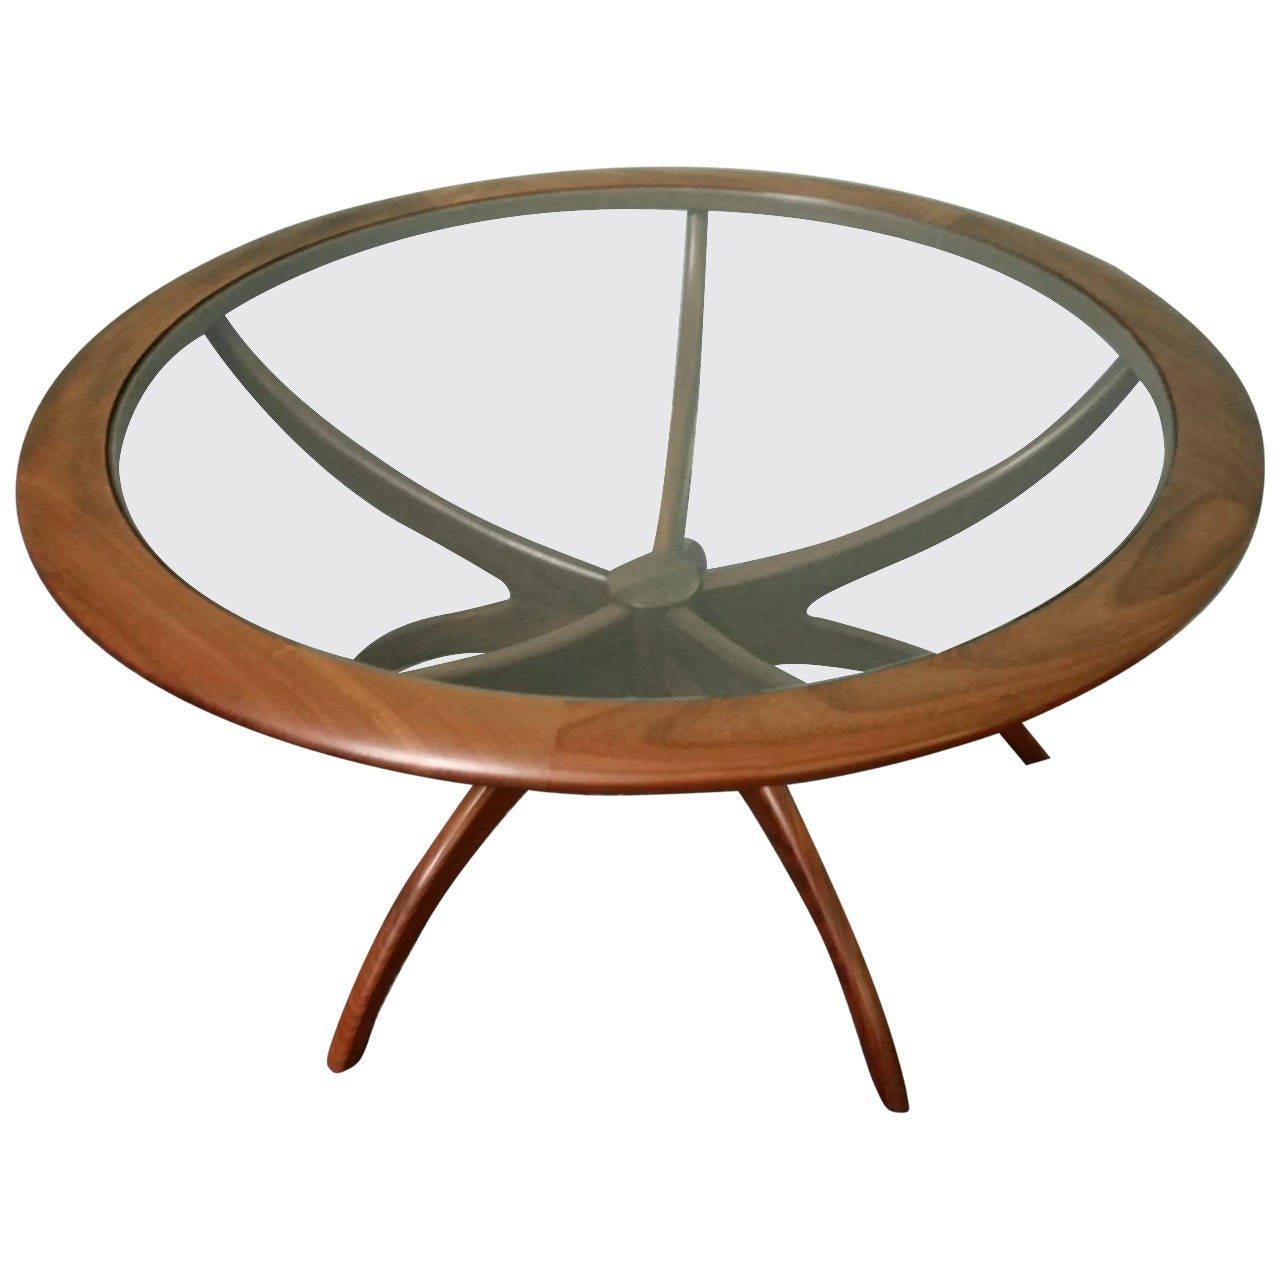 Mid century modern design g plan spider table at 1stdibs mid century modern design g plan spider table 1 geotapseo Choice Image